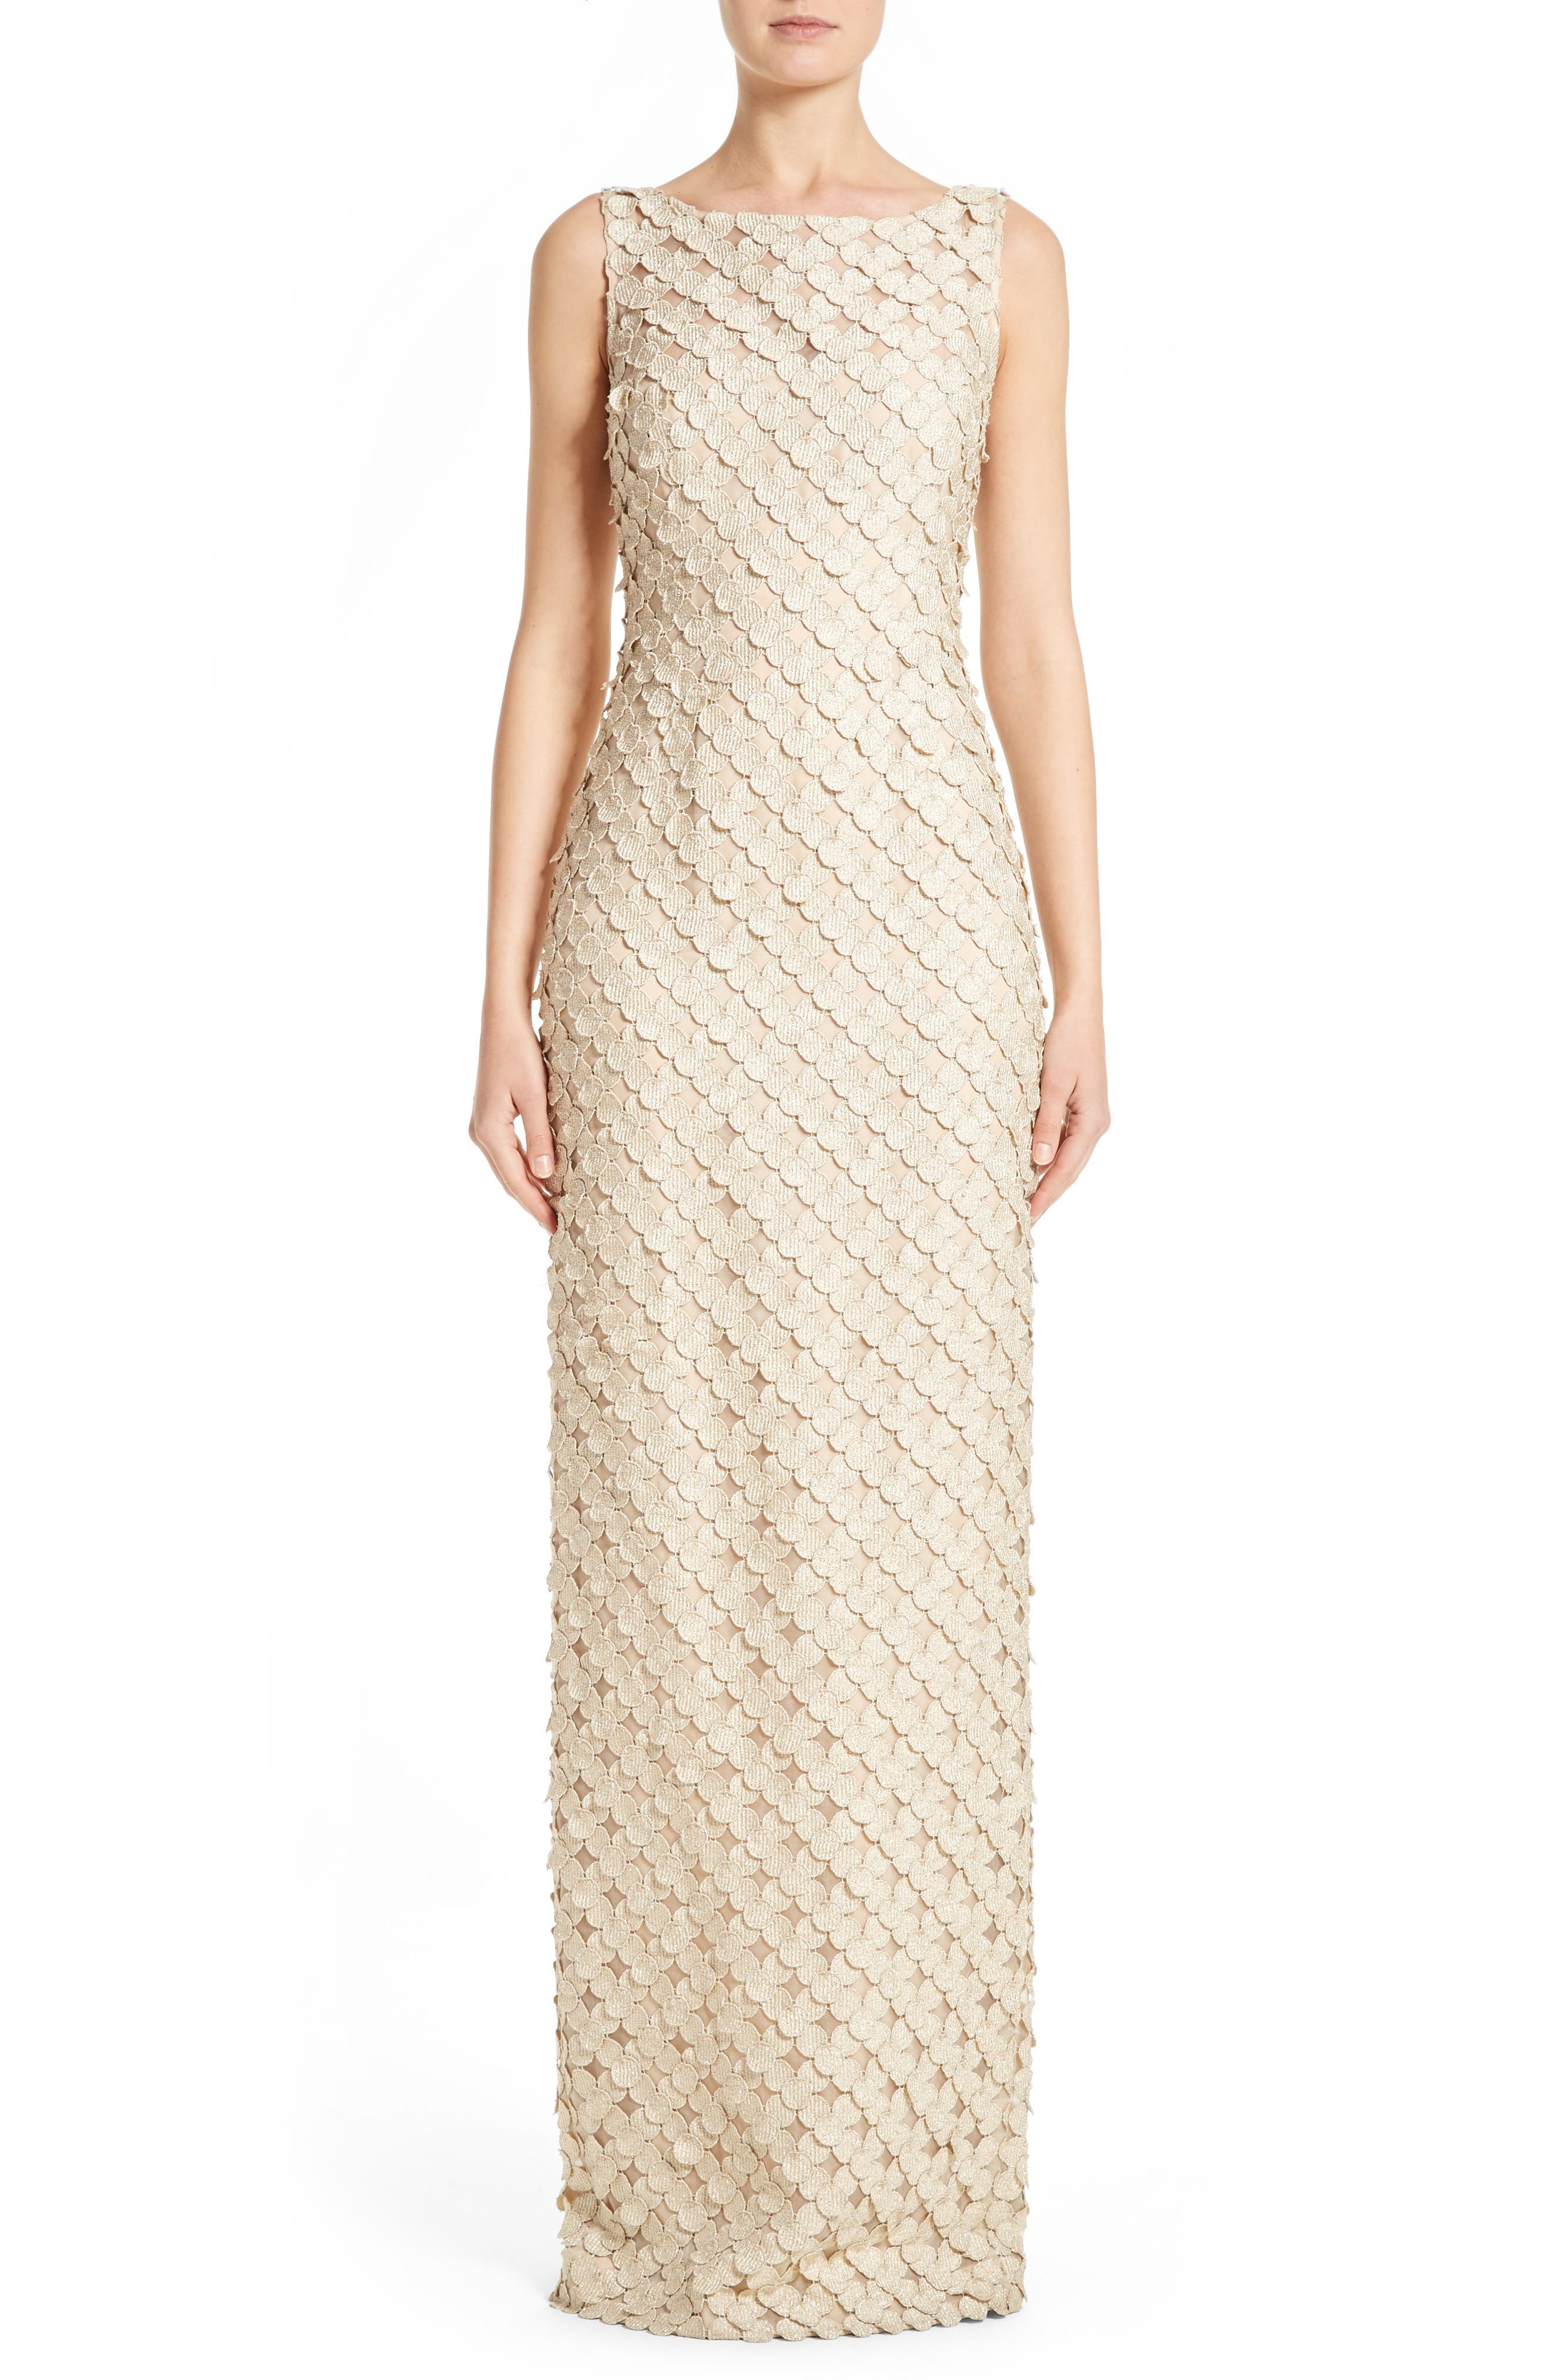 Carmen Marc Valvo Couture Circle Appliqué Sleeveless Column Gown